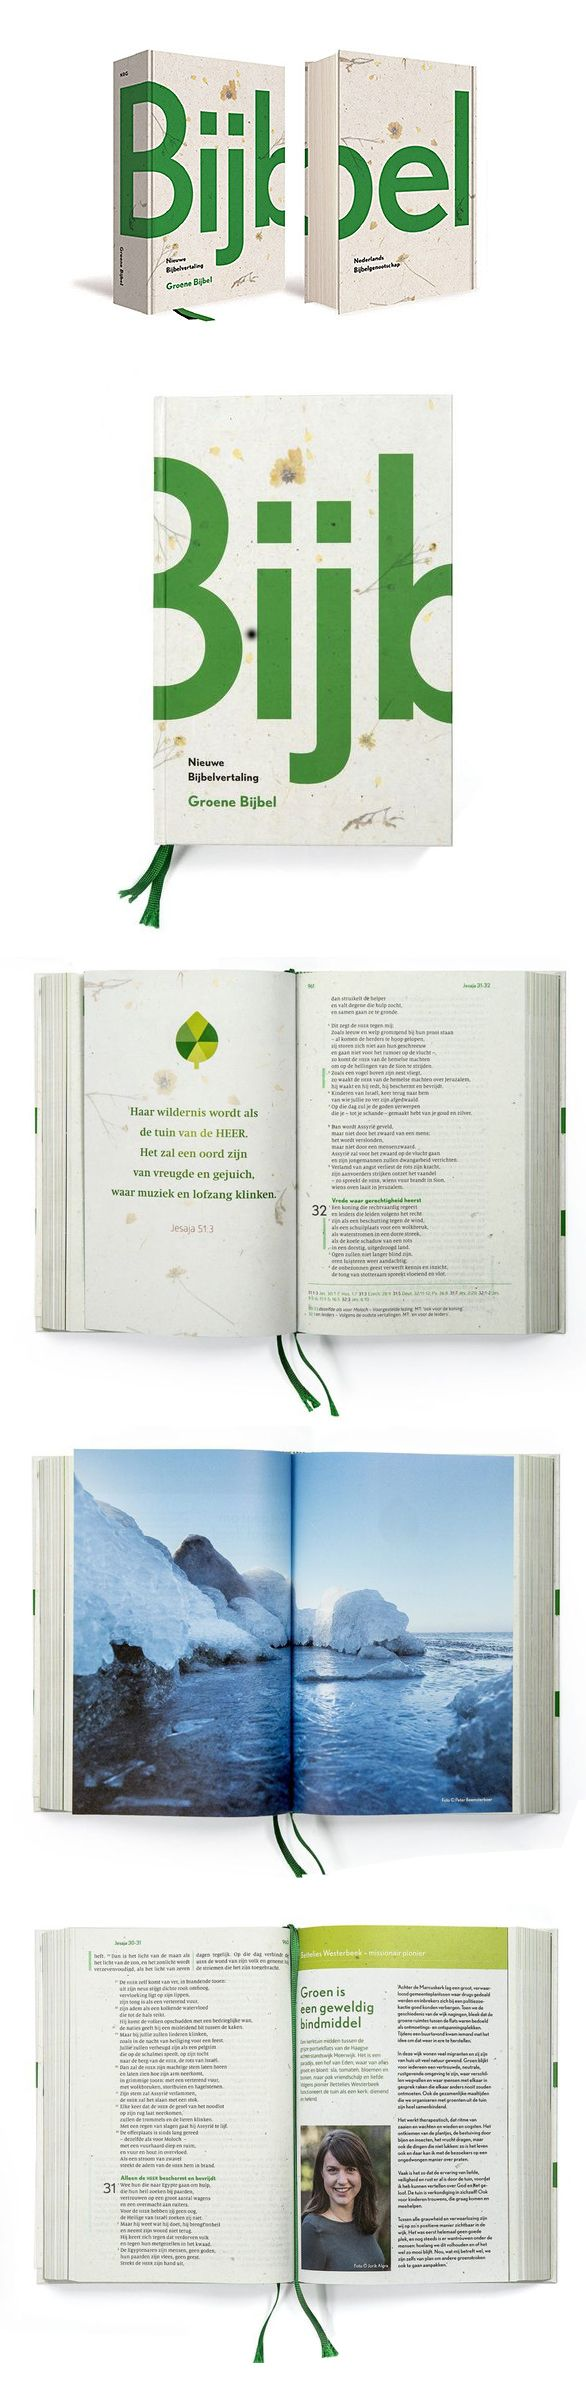 "Cover Design and page layout for the Dutch ""Green Bijbel"" (Bible), which includes a cross in the negative space of the i and j. The project was mired in scandal amidst claims that parts of the Bible were printed on non-recycled paper, which violated the project terms to print using 100% recycled paper from old Bibles."